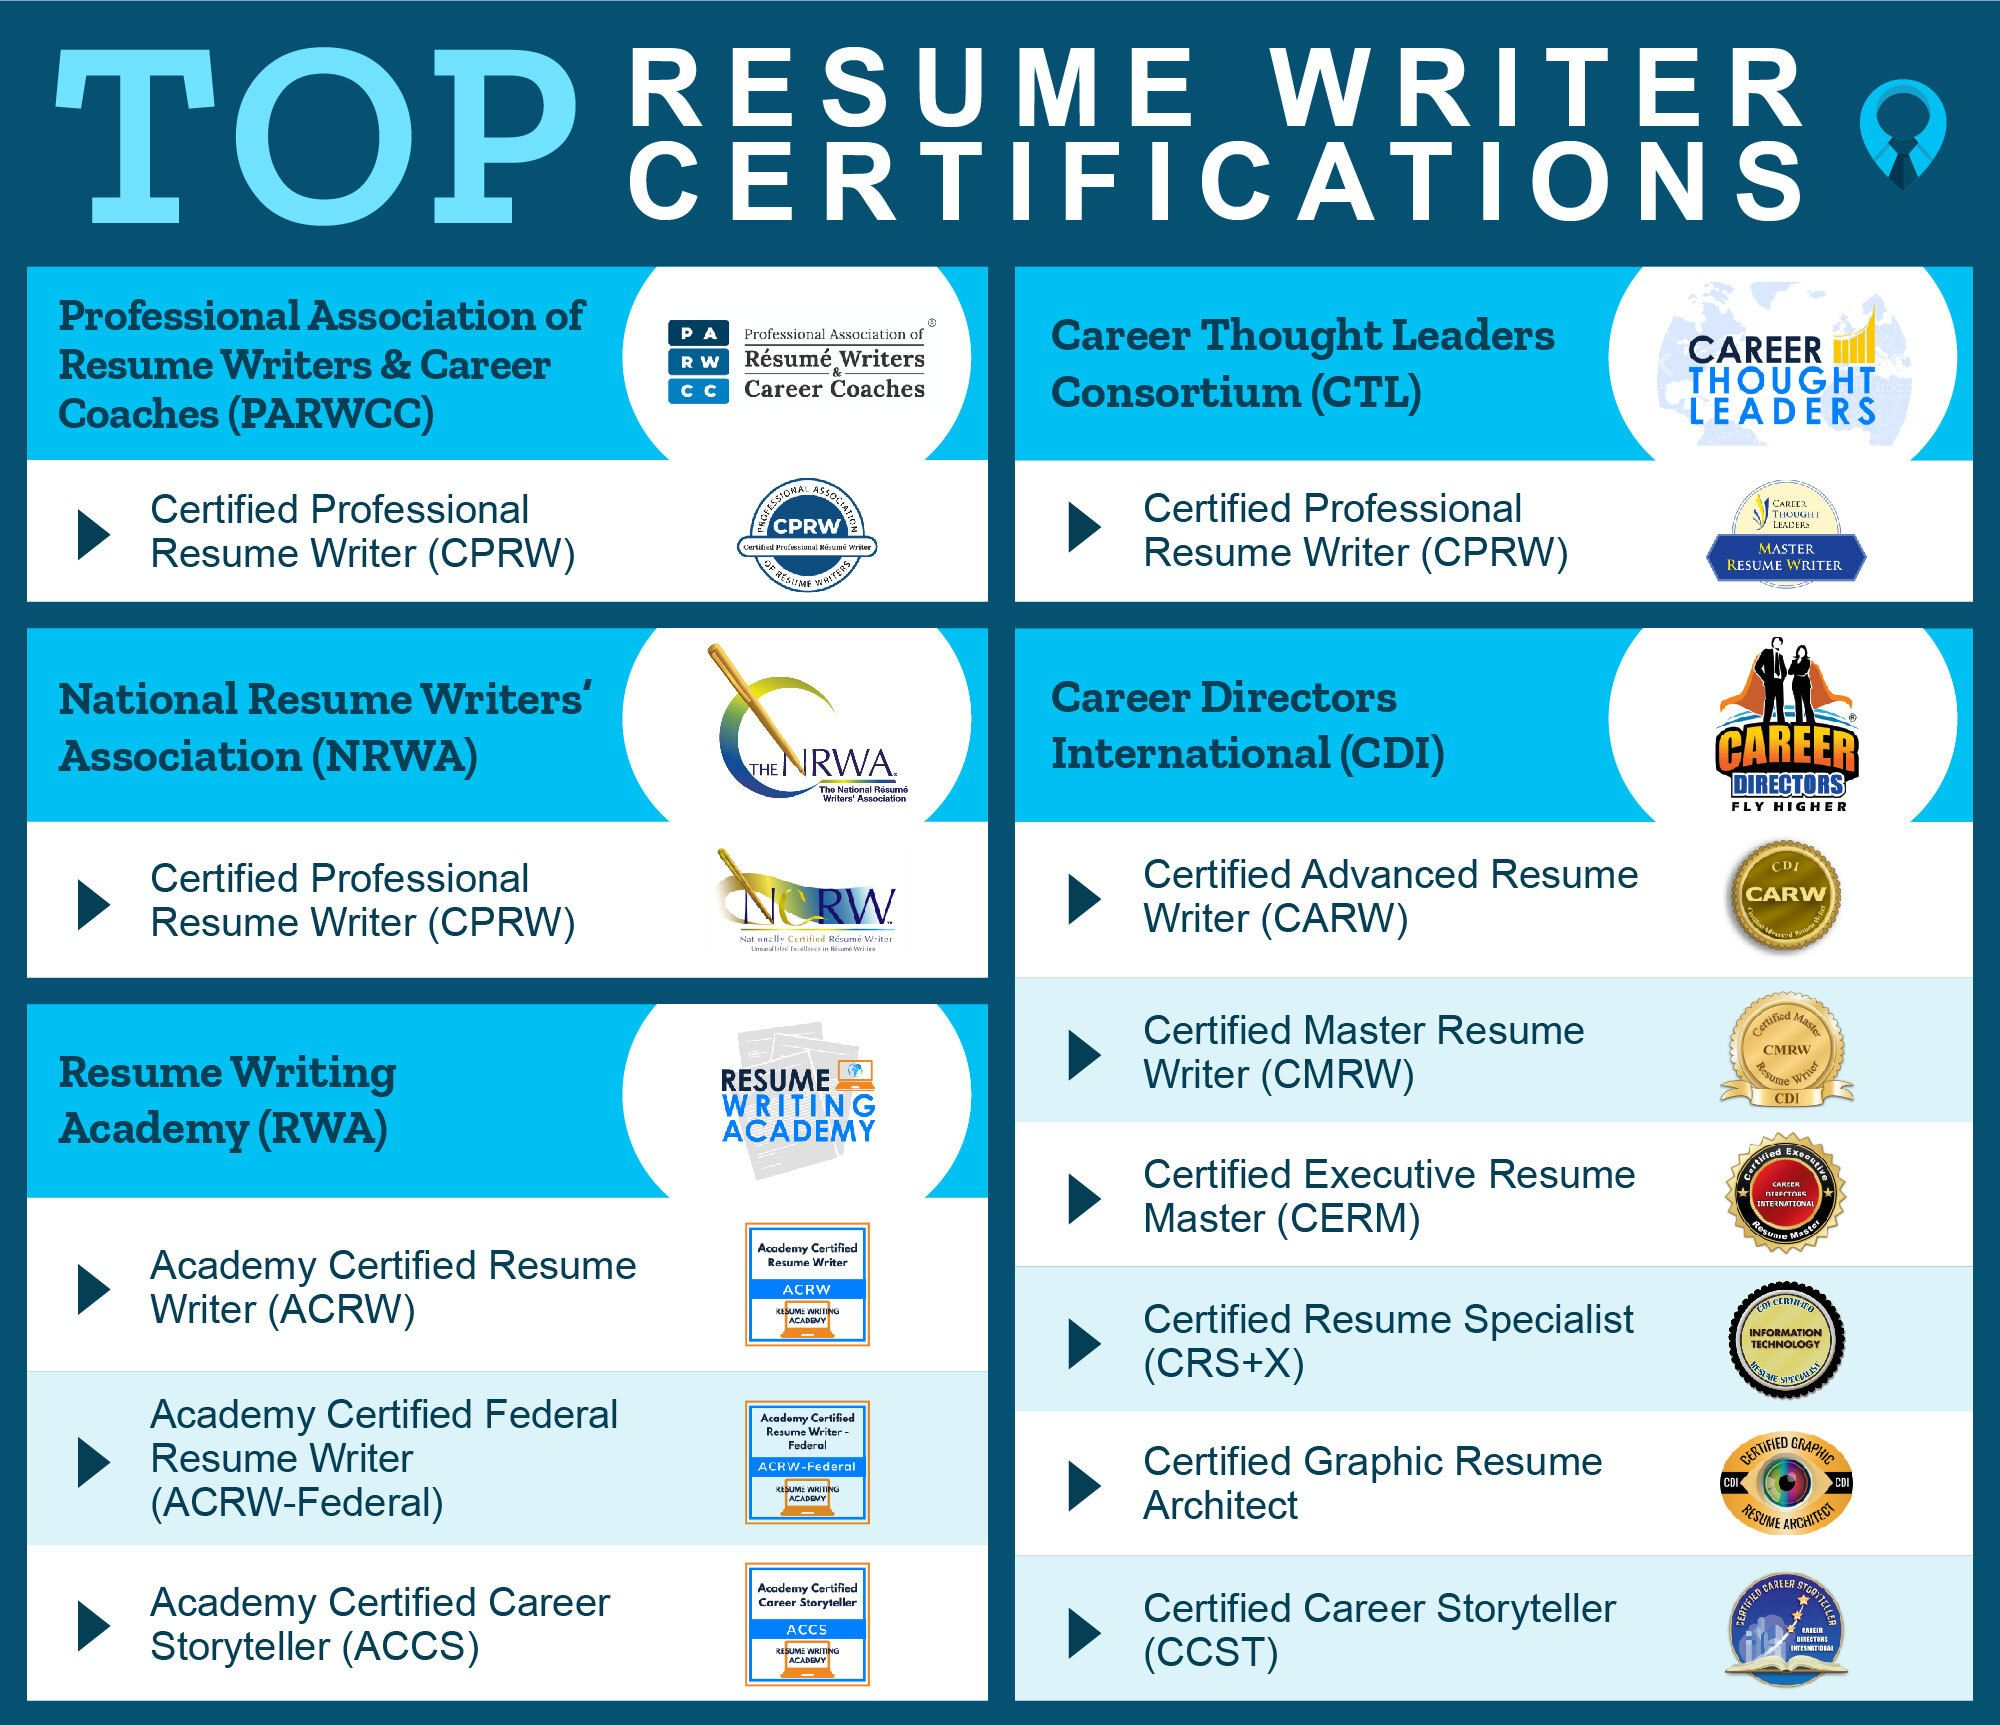 Top Resume Certifications and Associations